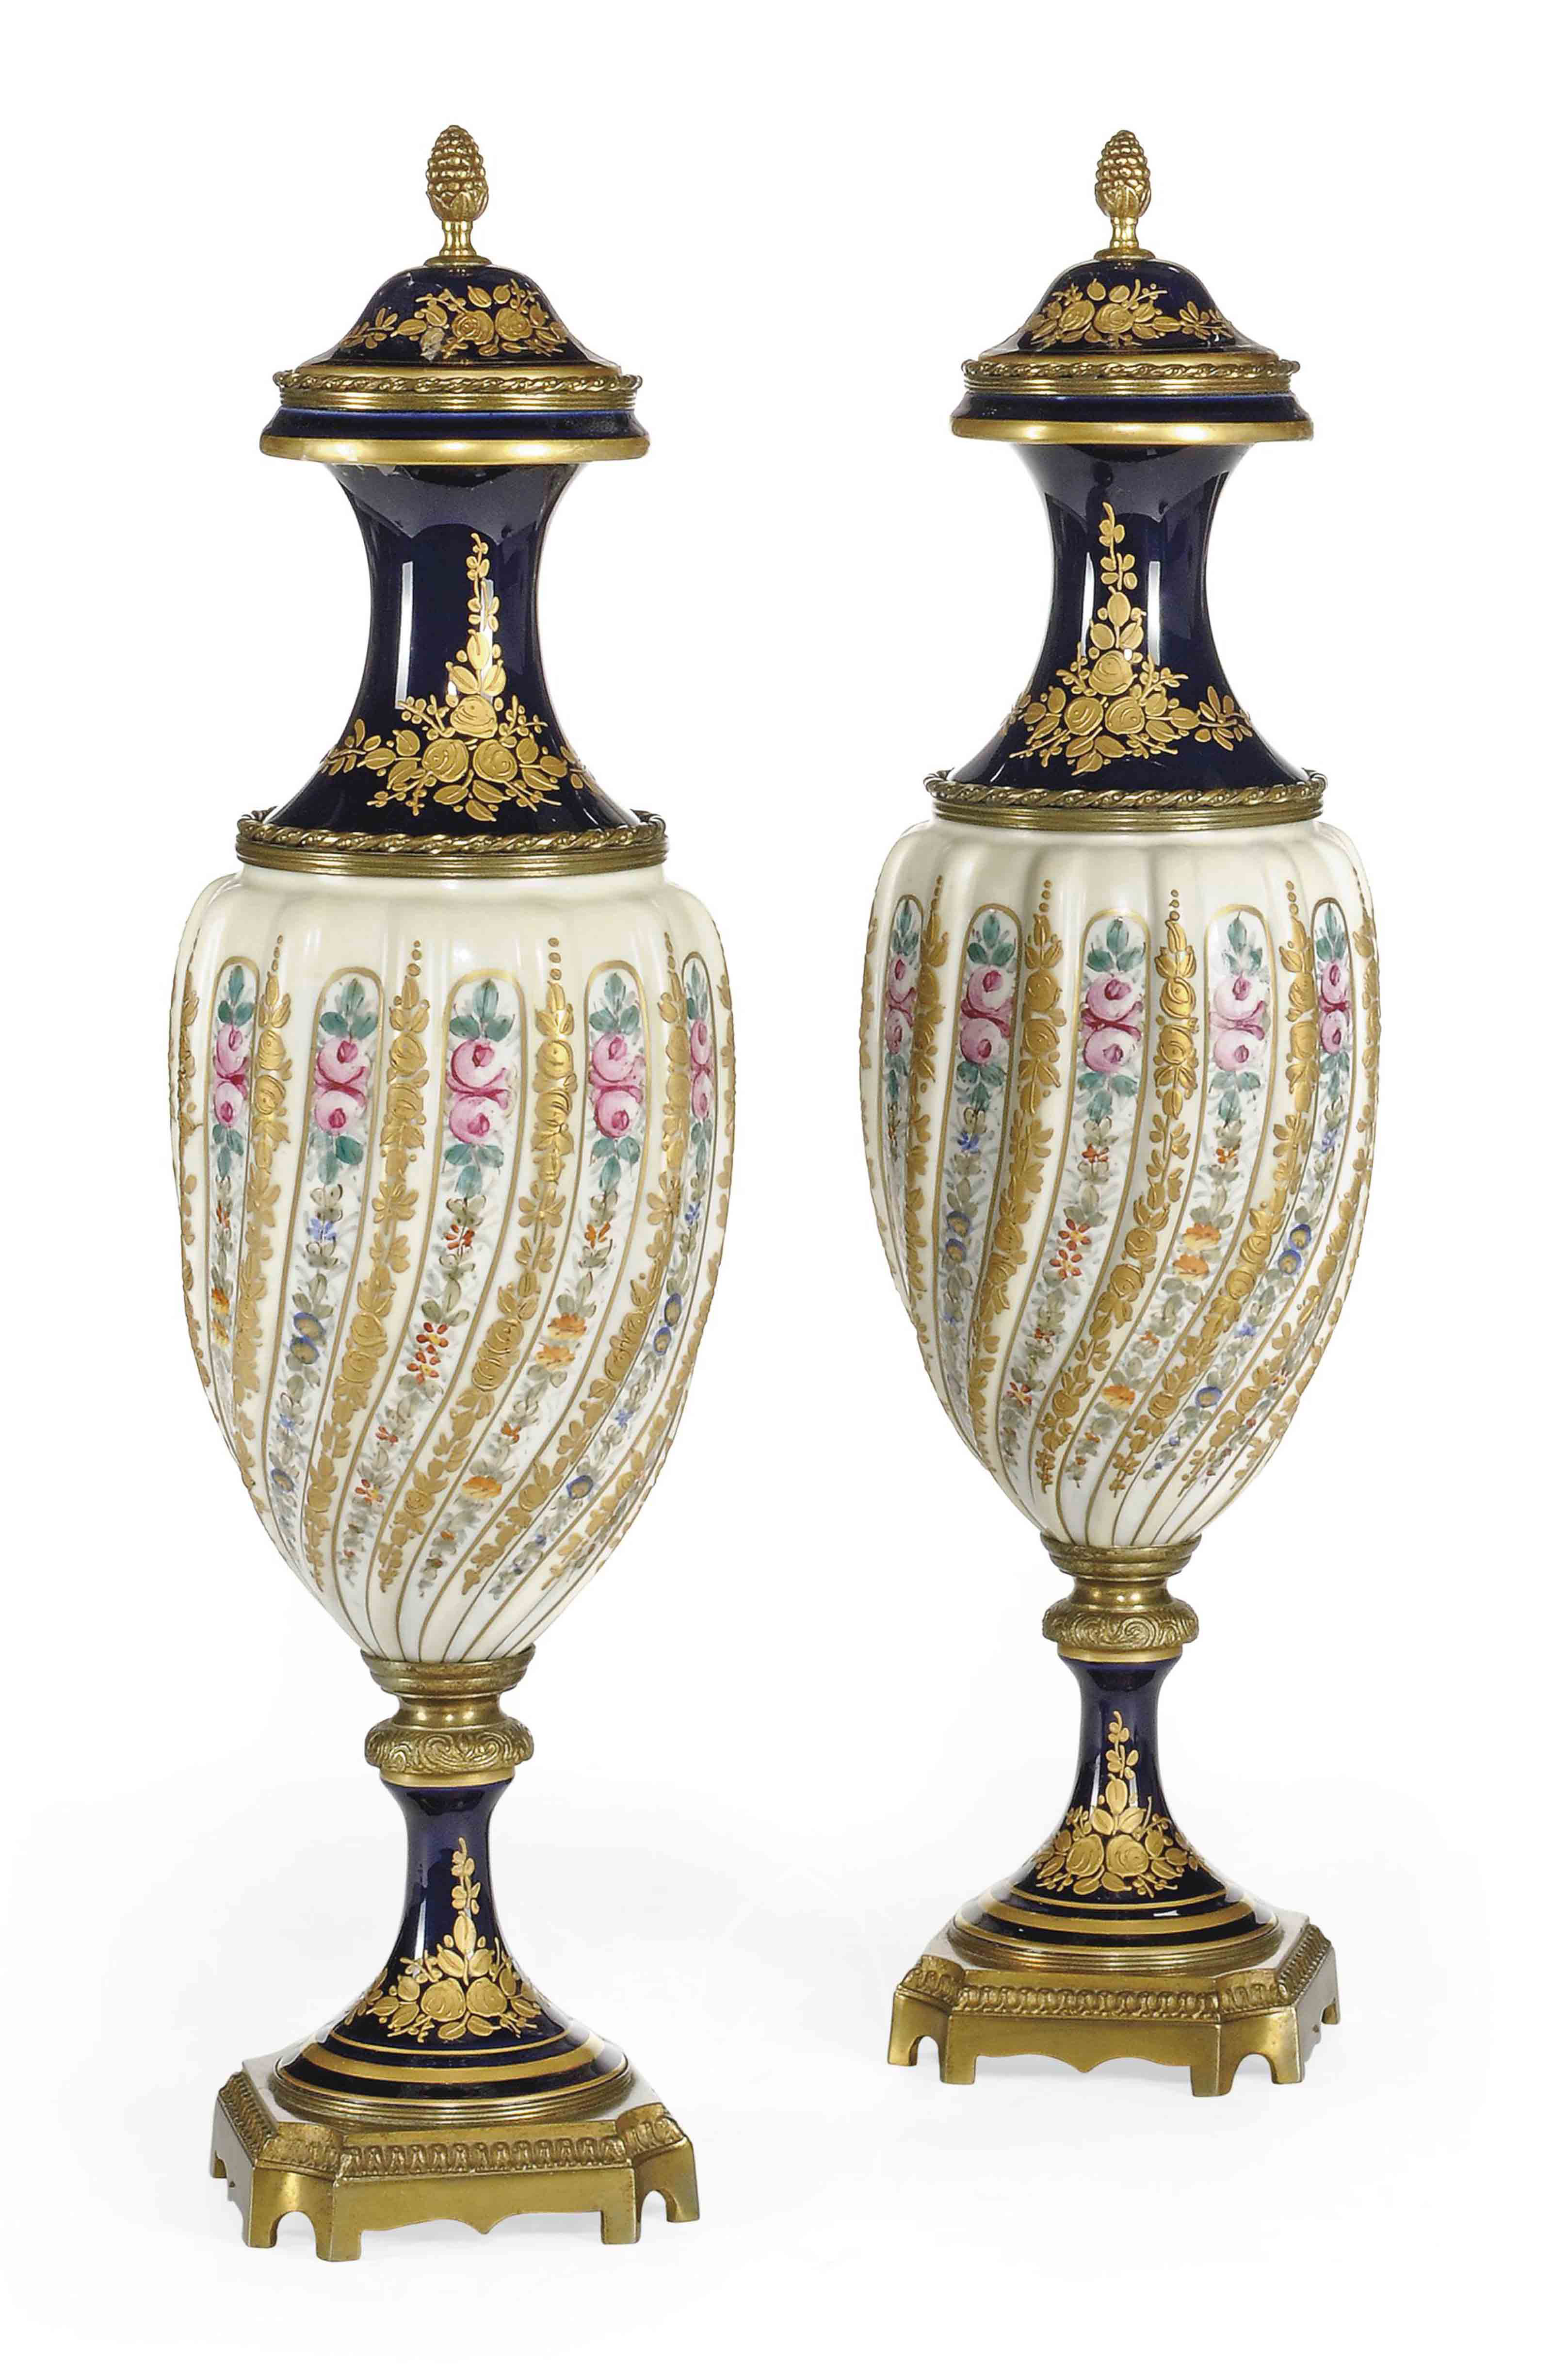 A PAIR OF SEVRES-STYLE GILT-ME